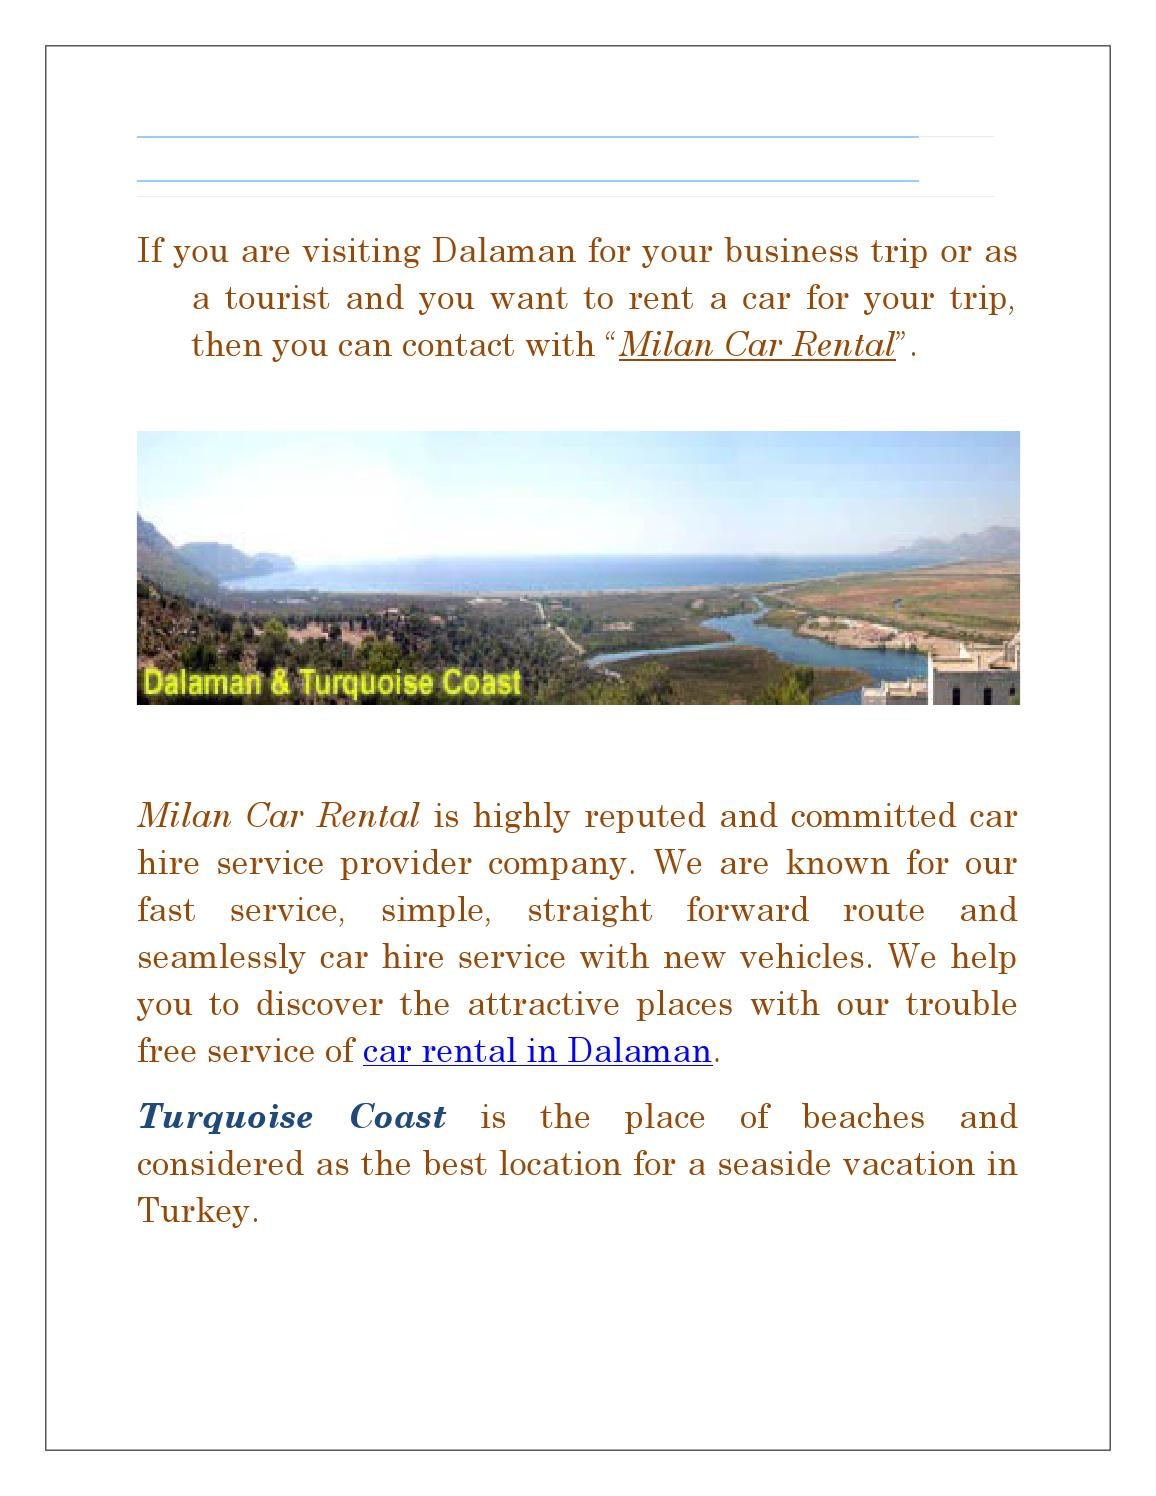 cheap car rental dalaman by milan car rental - issuu